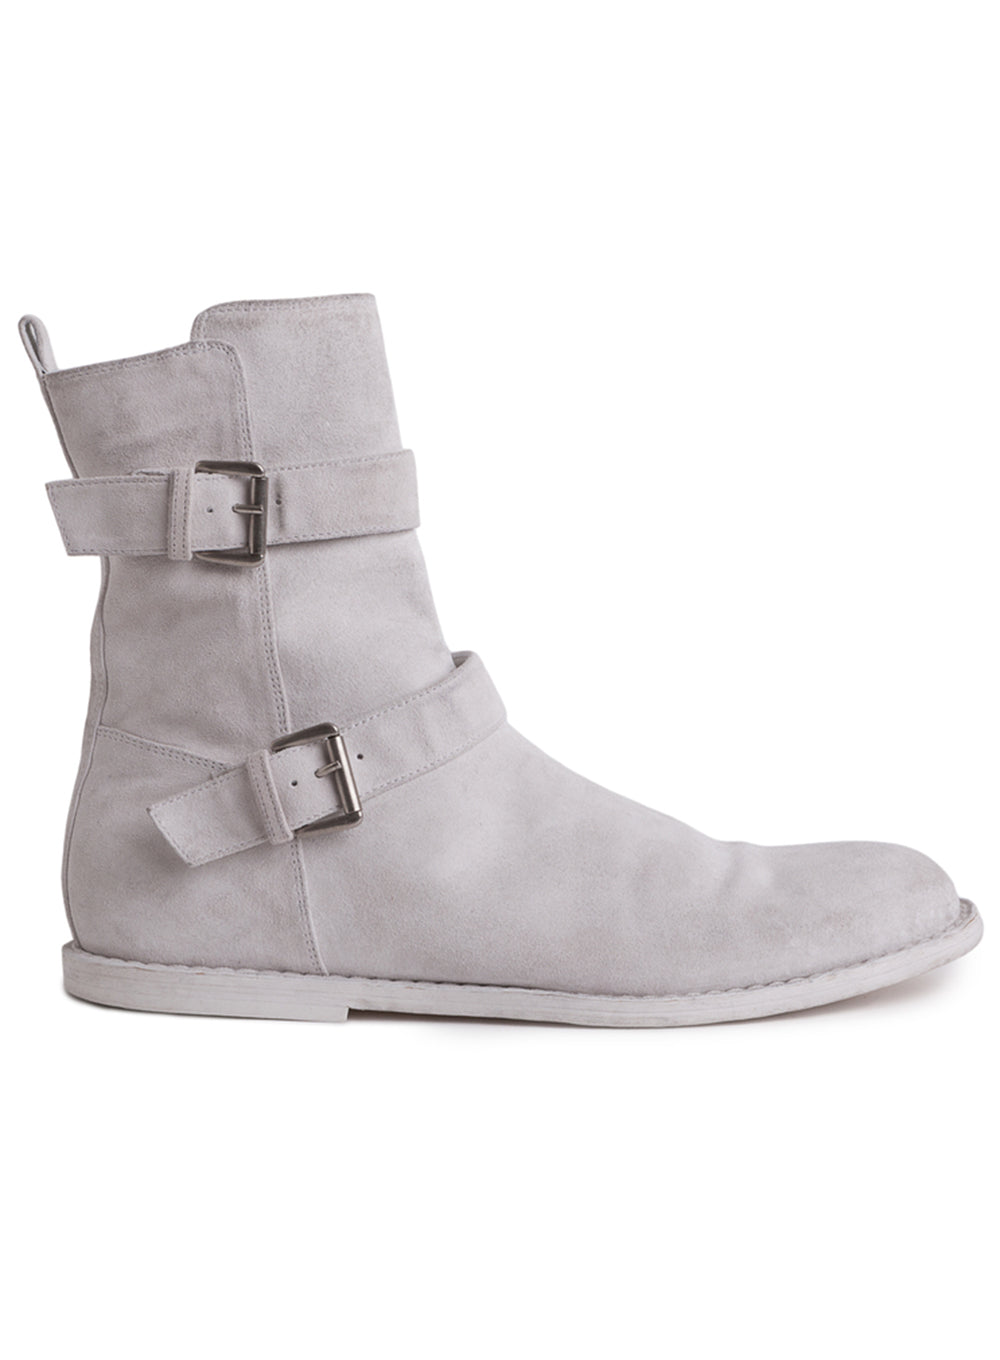 ANN DEMEULEMEESTER | Scamosciato Washed Bianco Ankle Boots